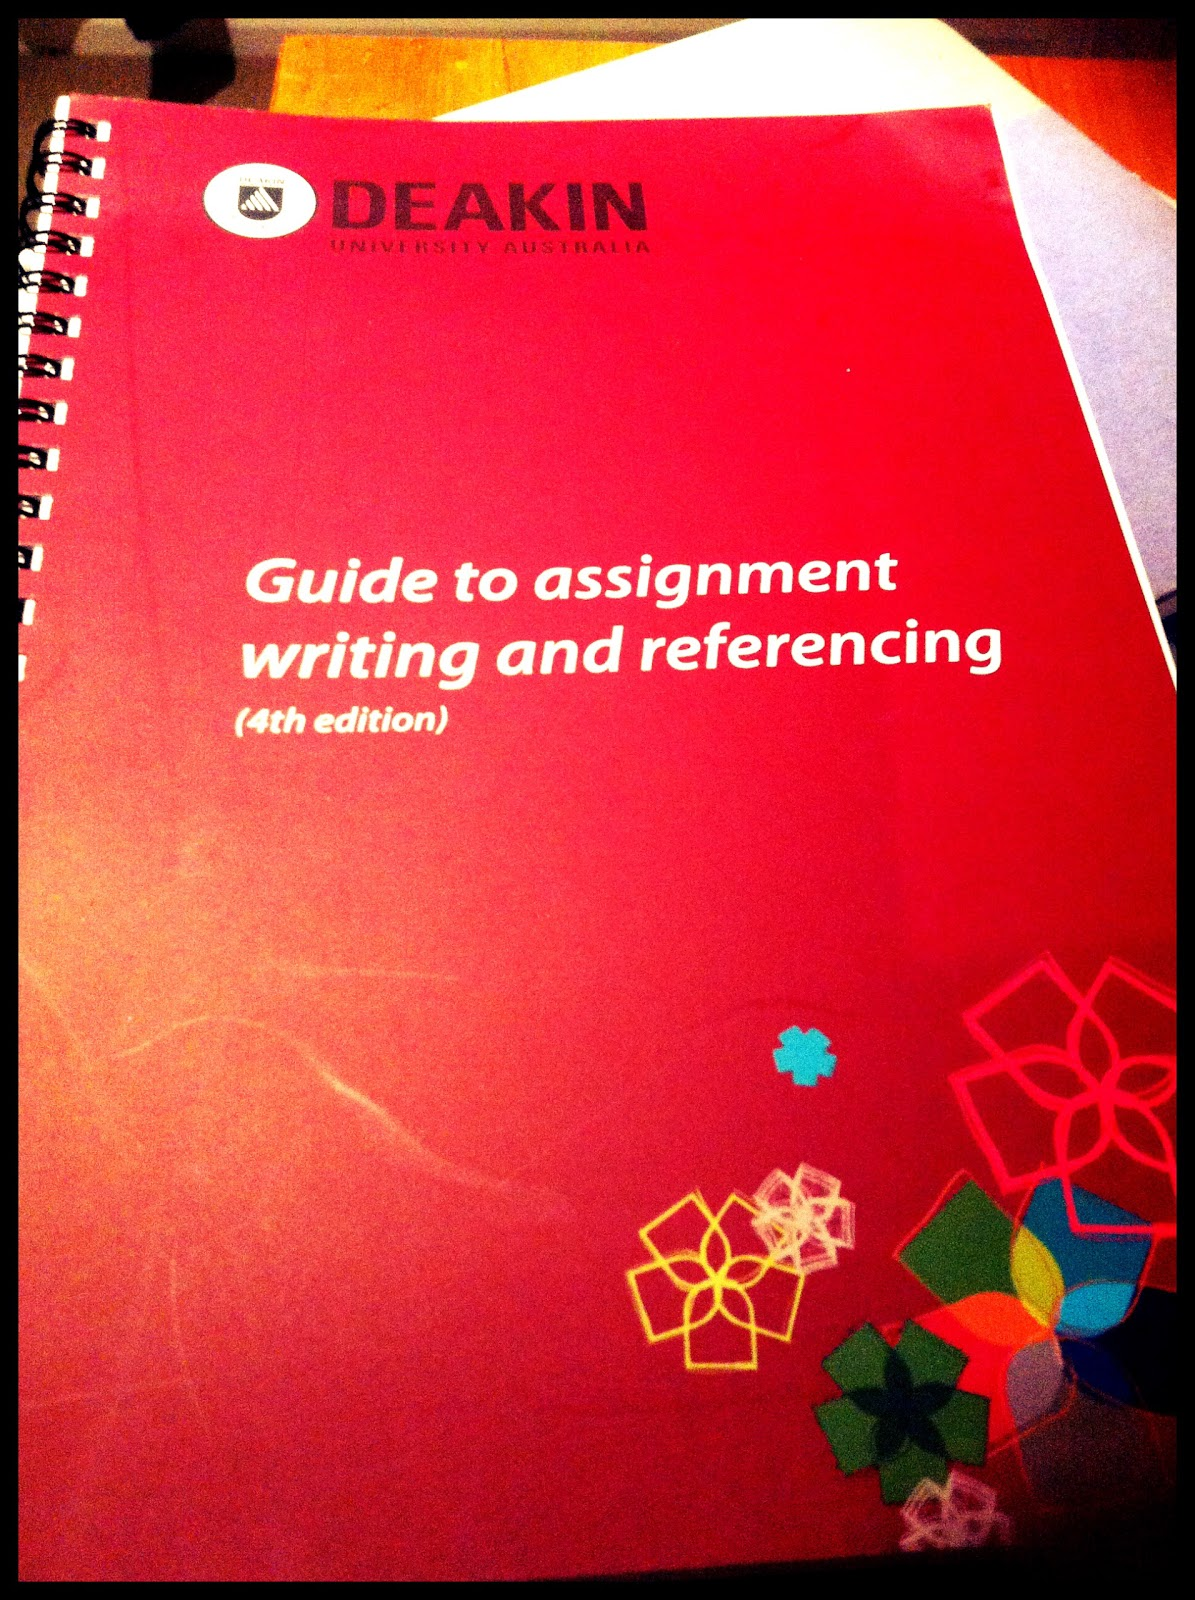 deakin university thesis writing